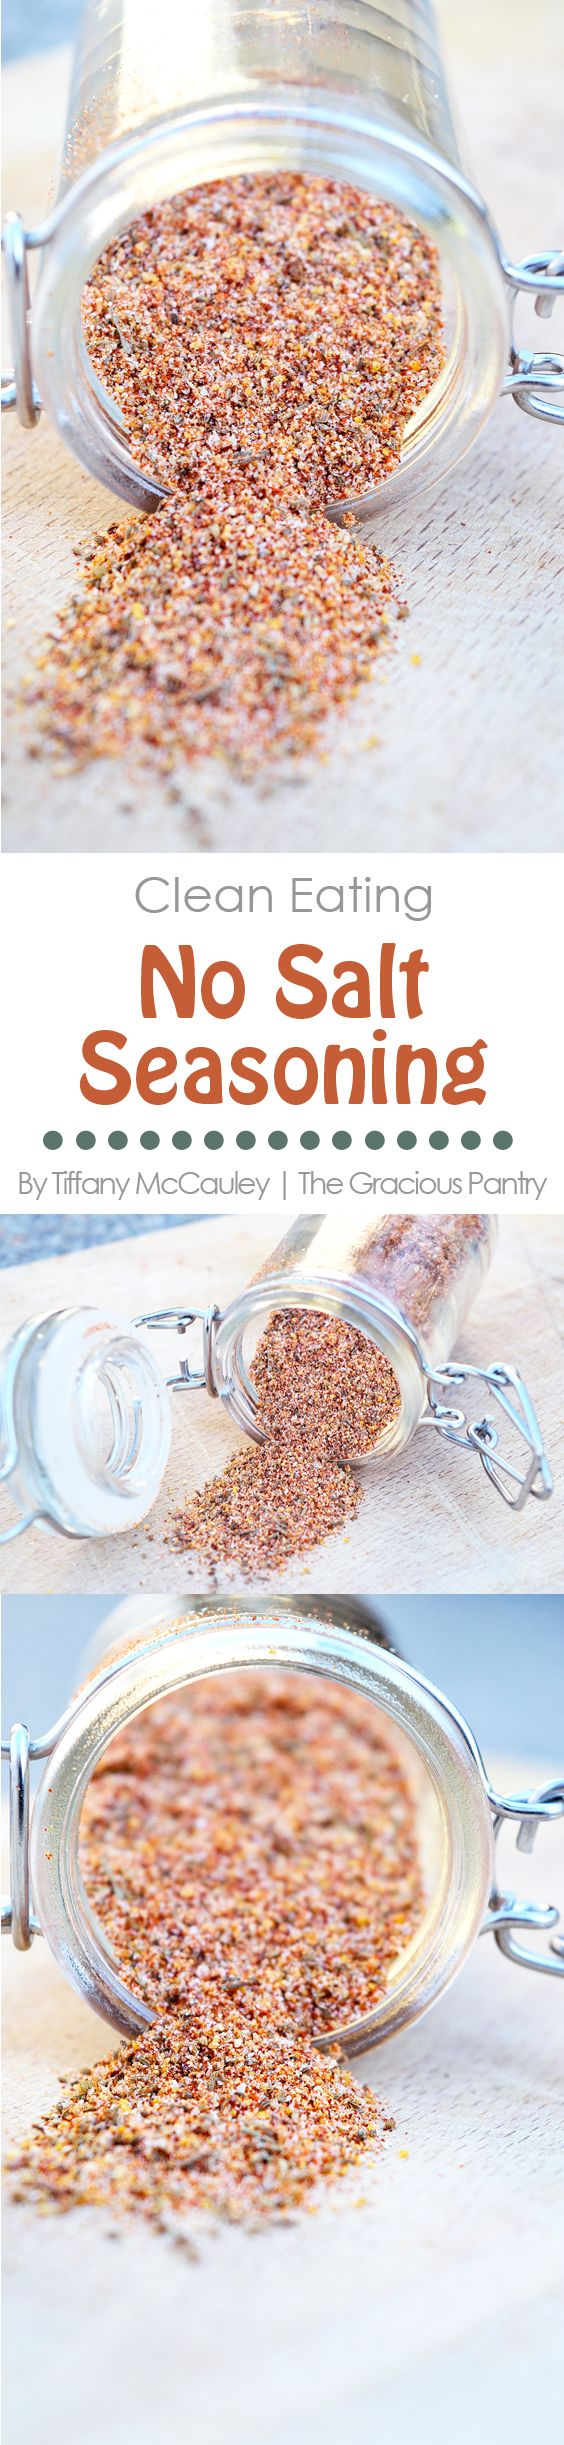 The 25 best no salt recipes ideas on pinterest easy healthy clean eating recipes no salt seasoning recipe salt replacement seasoning mix https forumfinder Images